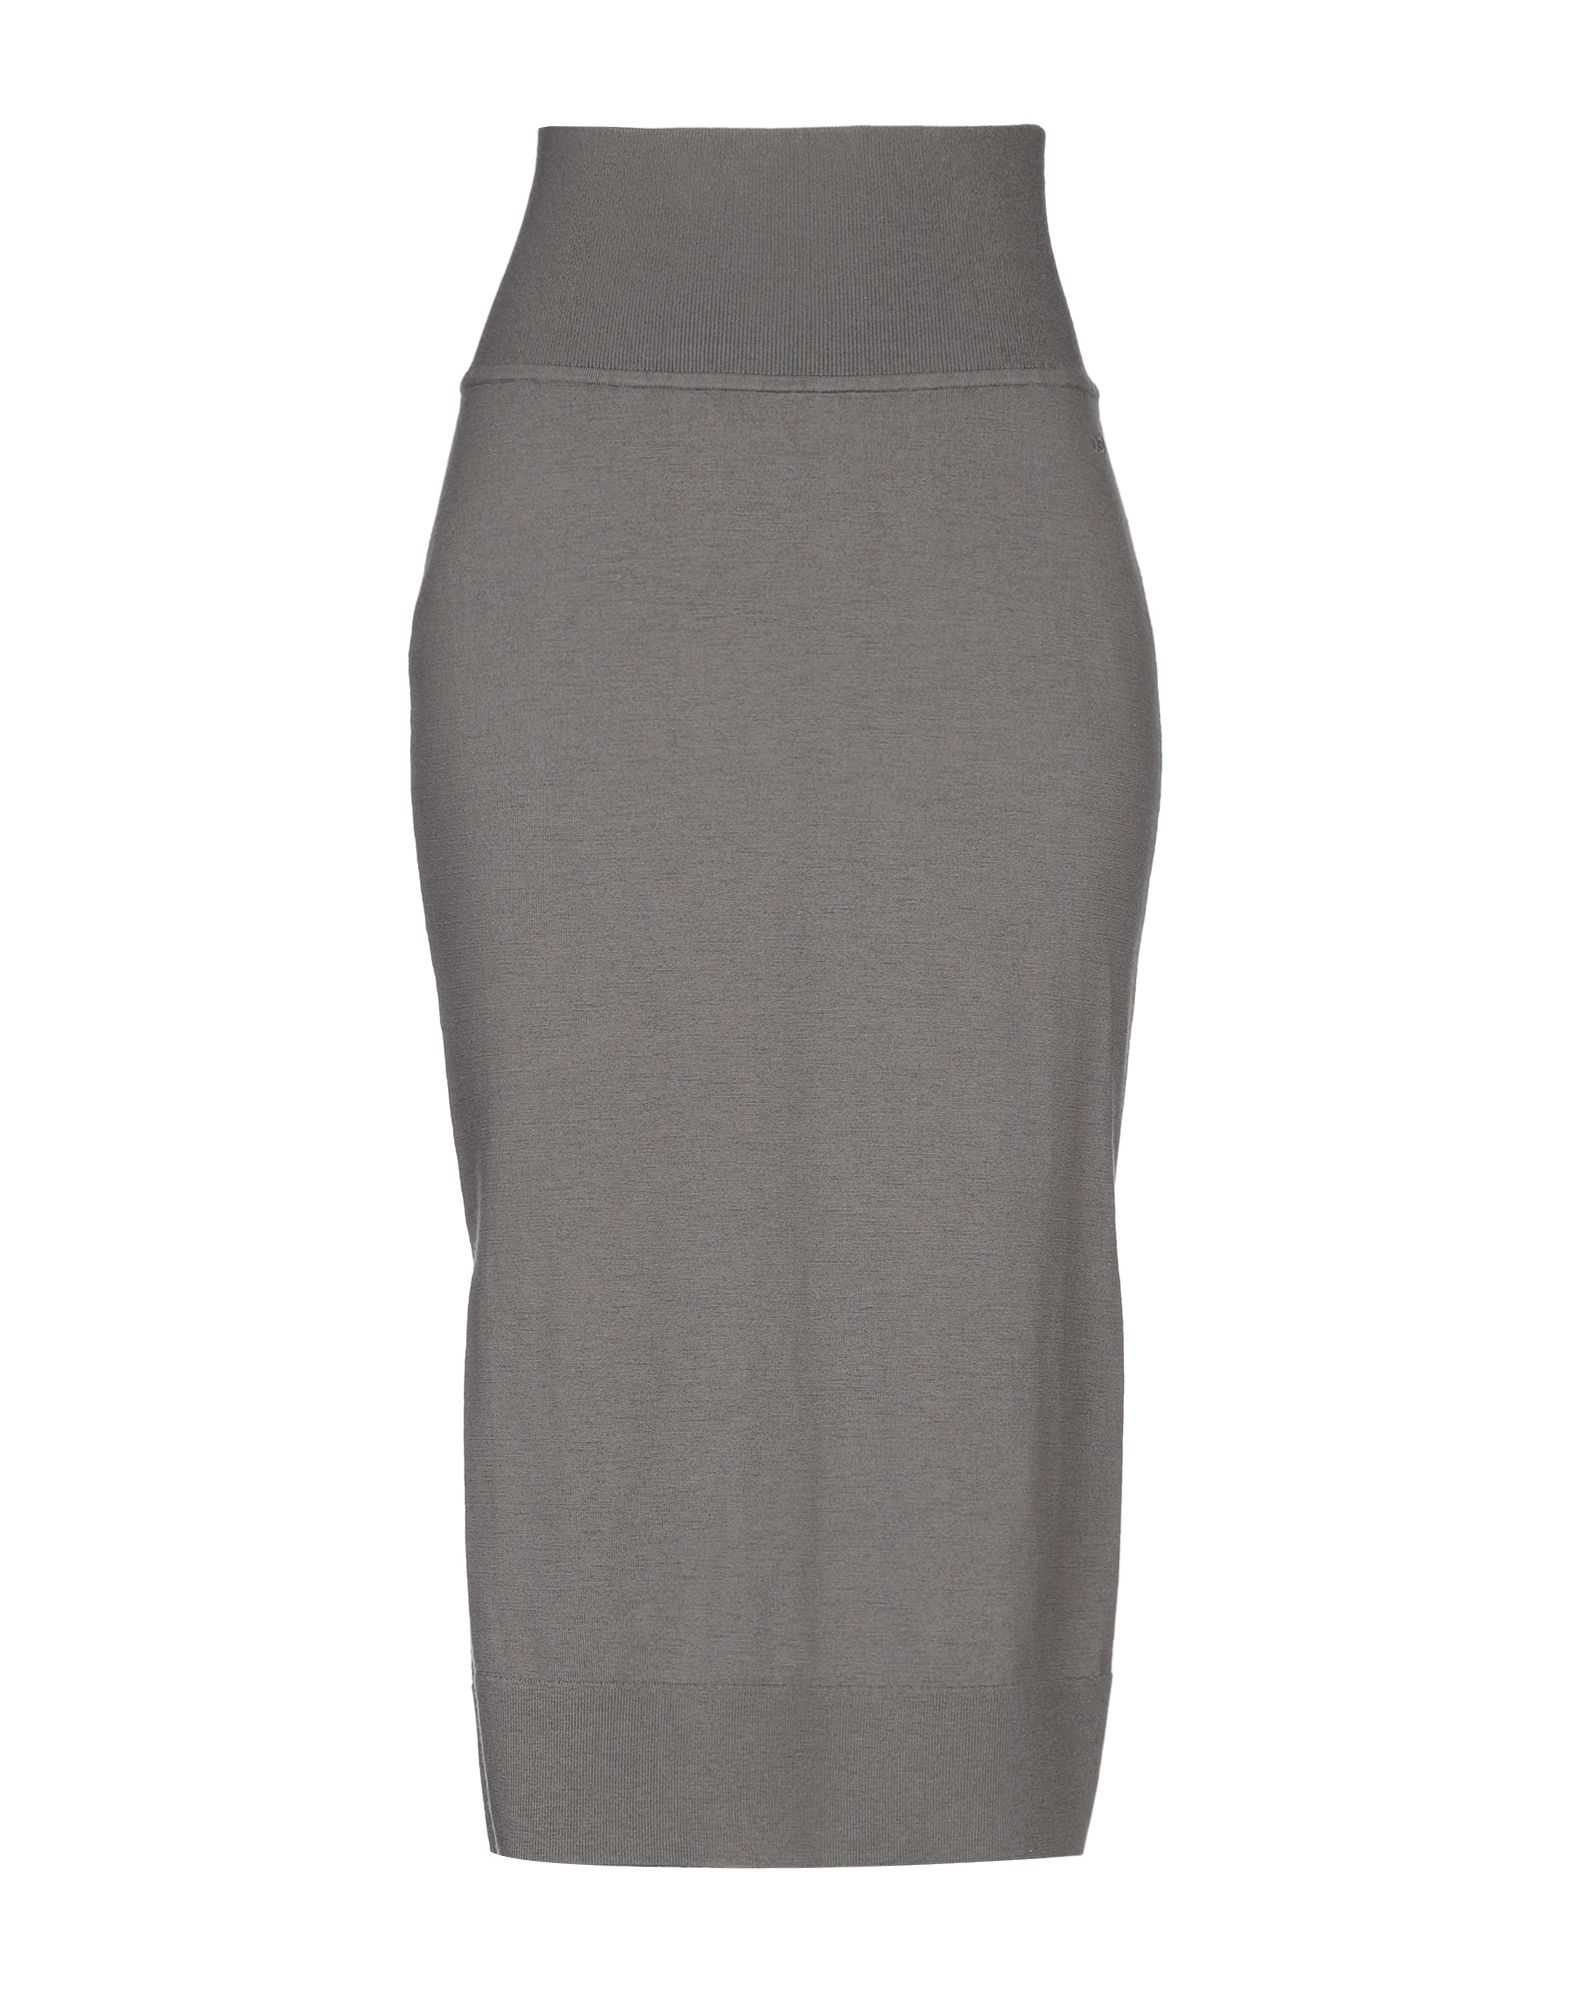 SMINFINITY 3/4 Length Skirts in Lead